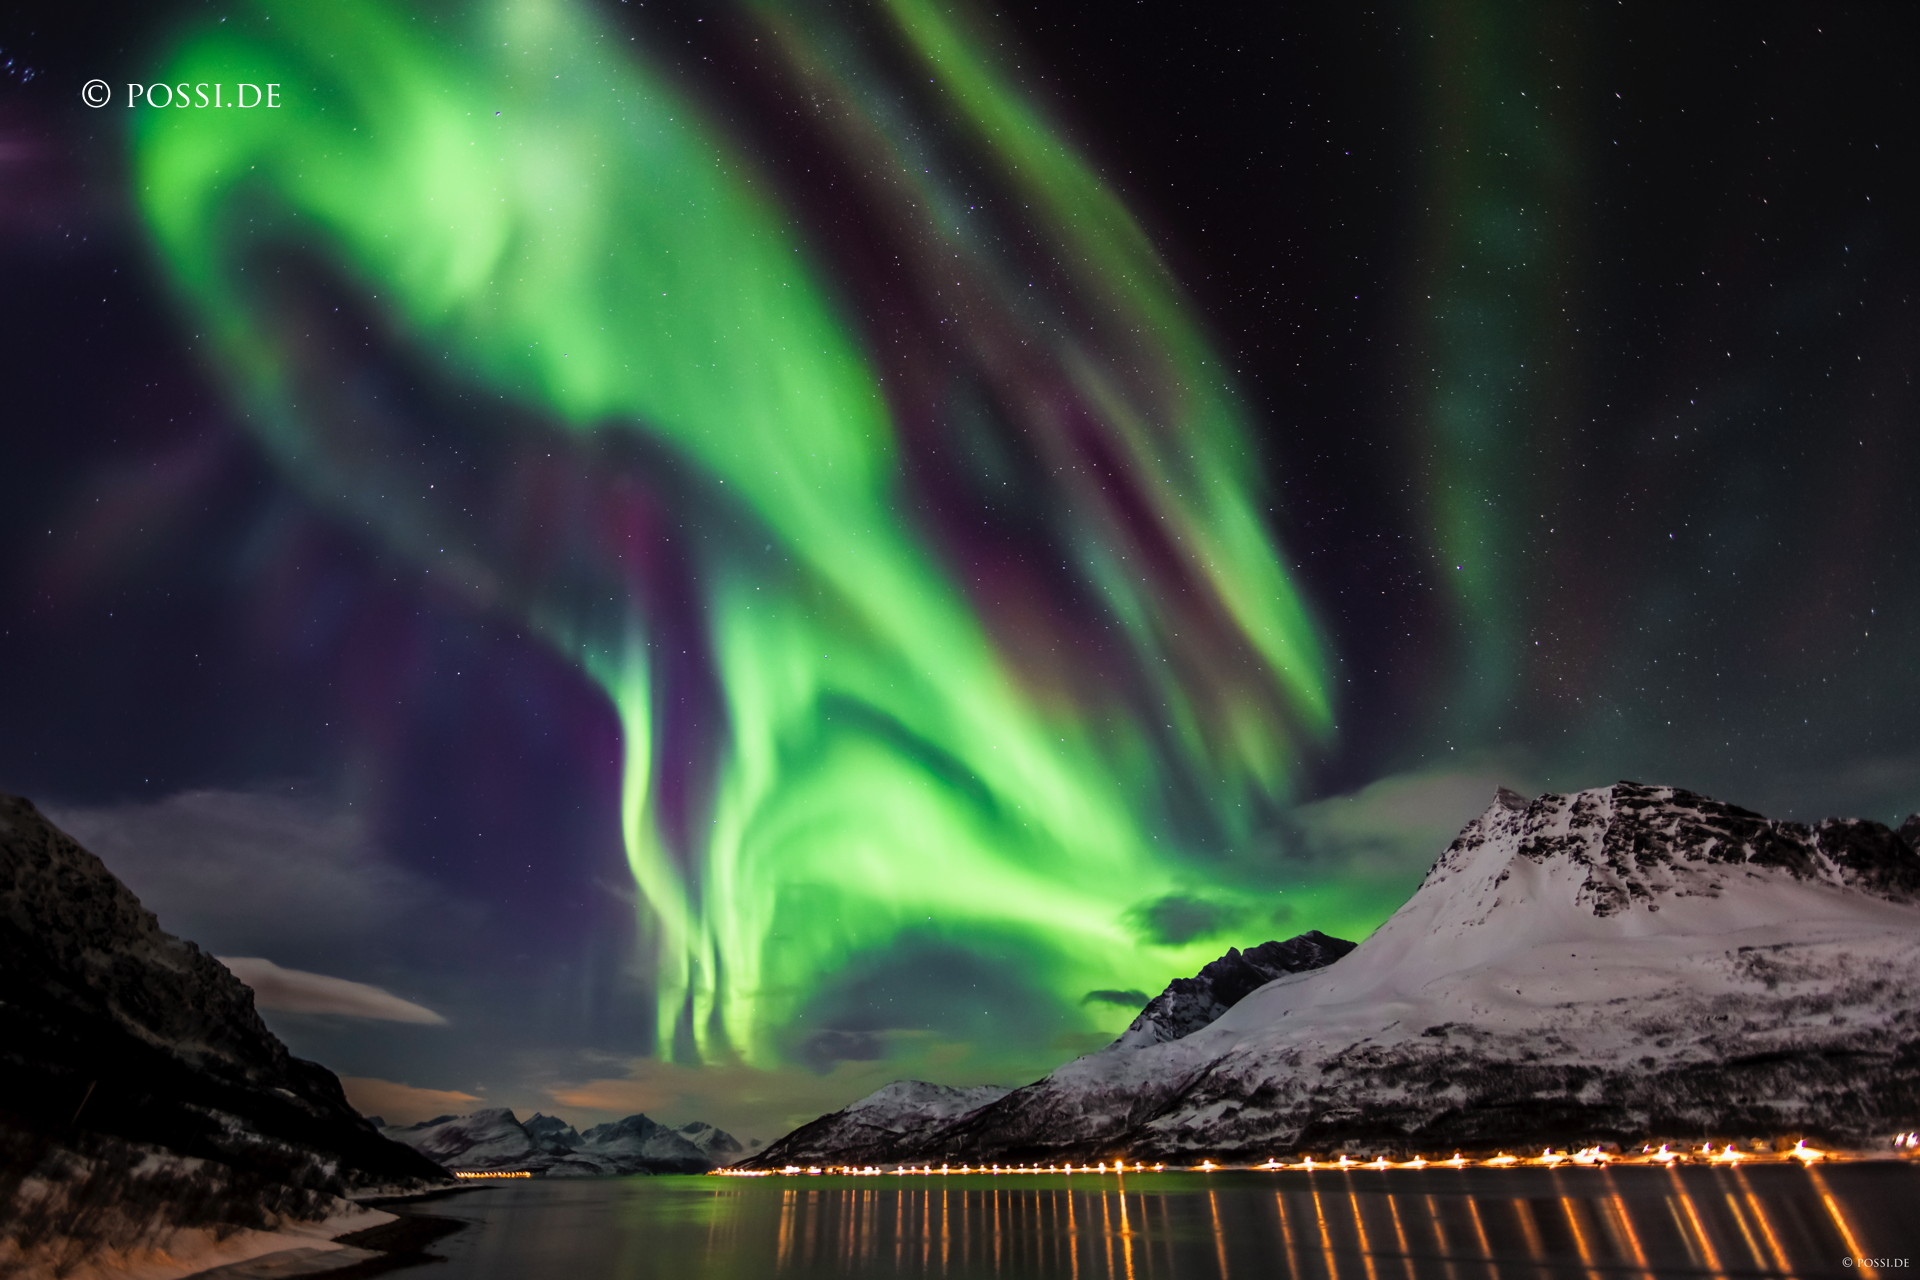 Capturing the dance of the aurora borealis in Norway